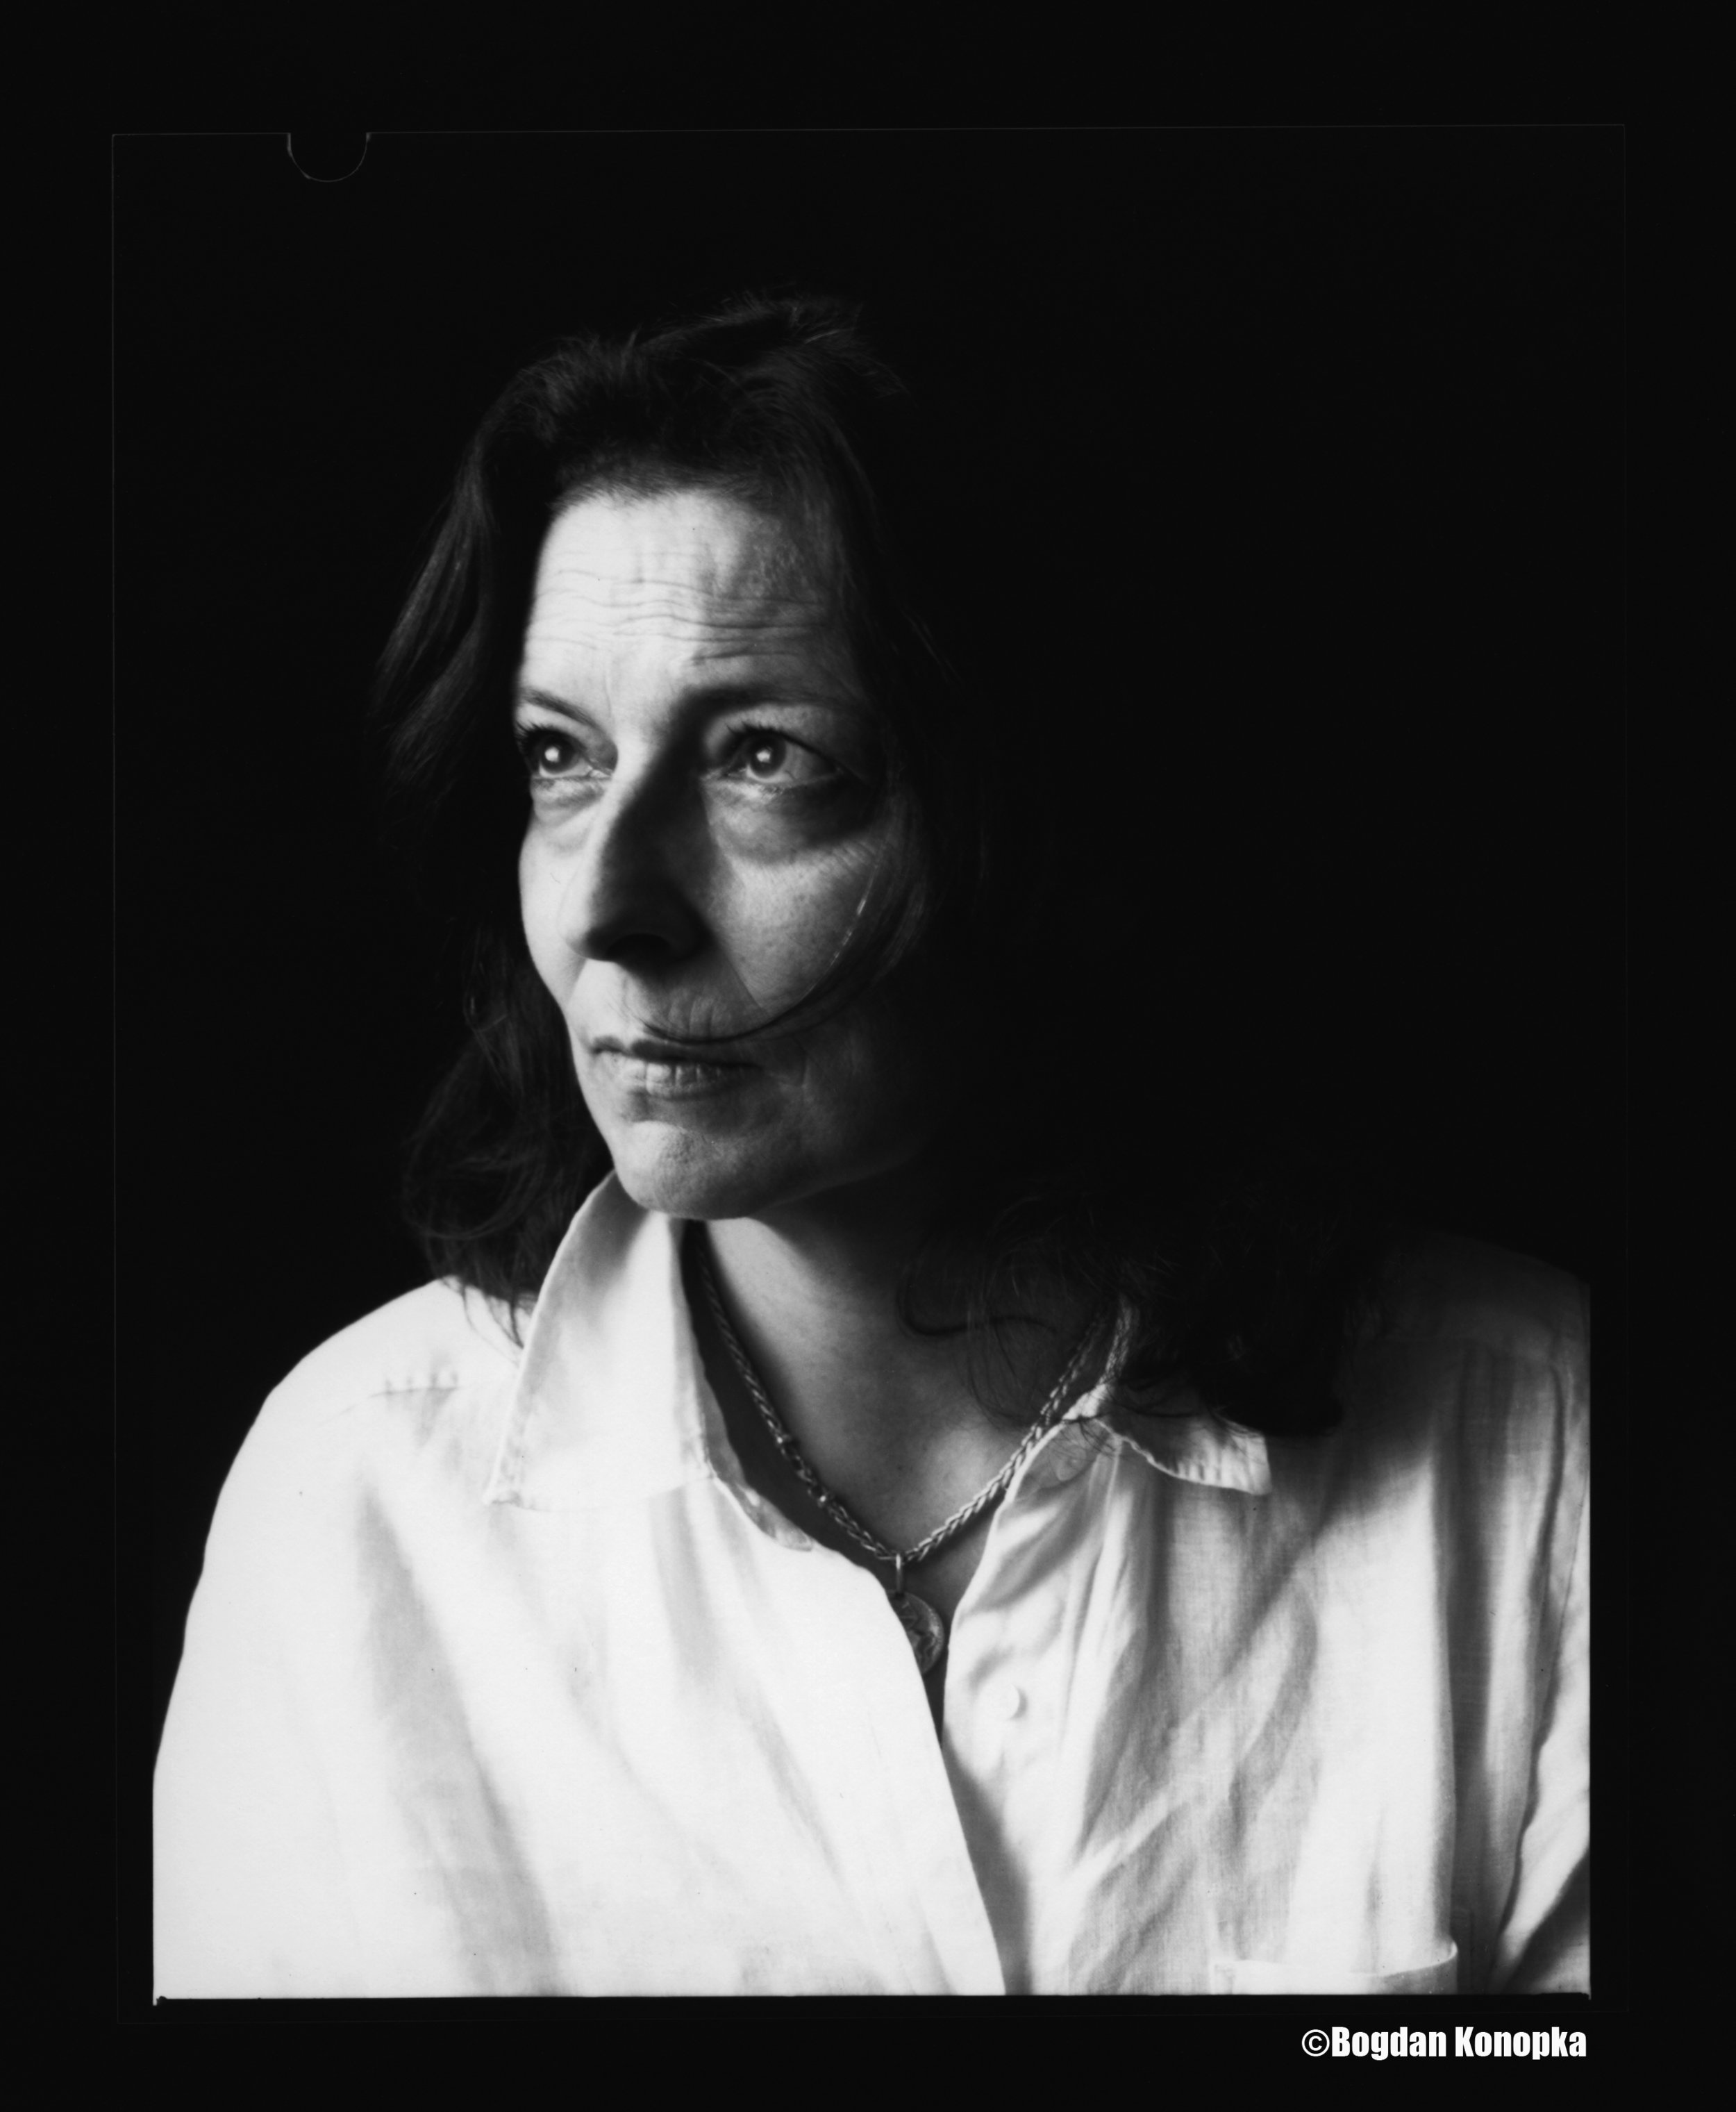 """Frederique Destribas - Publisher, The Sunday Publisher & Photographer's References  Frédérique Destribats is a publisher, photography book collector and author based in Paris. She is a professional translator specialised in art and photography collaborating with various international publishers (Aperture/PhotoBookReview, Artpress, Dalpine, Filigranes, Journal, Editions La Martinière, Metabooks, RVB Books, Steidl Verlag, The Eyes, 10×10 Photobooks, Editions Textuel…); institutions (Musée de L'Elysée/ELSE magazine, Carré d'Art Nîmes, Musée d'art contemporain MCA Sydney); galleries (Galerie 1900-2000, Priska Pasquer) ; and artists (BöhmKobayashi, Sophie Calle, Vincent Jendly, Laurent Kronantal, Jeanne Susplugas).  She has recently initiated an editorial platform, L'éditeur du dimanche / The Sunday Publisher, dedicated to publishing challenging artists books. Under the imprint, d&books, publications include INDEX by Antoine d'Agata (2014, editor and co-published with Editions André Frère ; Je n'ai plus peur du noir, by Suzanne Magre and Julien Magre ( 2016, co-editor et alli and co-publisher with Filigranes); Other Adventures of Pinochio by Lorenzo Tricoli (co-editor and co-publisher for the English version).  Recently released, the projects of two distinctive emerging photographers, Moshe by Sandrine Lopez and Ecume by Isidora Gajic. The platform is also home to the collection, Photographers'References (in collaboration with Baptiste Lignel), a series of long-term conversations with internationally renowned artists, including David Goldblatt (2014) and Richard Misrach (2016). The next conversations with Joachim Schmid will be released in 2017.  Editorial contributions include:  The PhotoBookReview, Aperture, Paris Photo, issue 11, Fall 2016, on photobooks for children; """"The Puzzle of Absence (Reading Notes)"""", in Out of the Blue by Virginie Rebetez, published by Metabooks, 2016.  She recently co-edited the magazine Co-Curate #2, Adolescences, published by Isabelle Evert"""